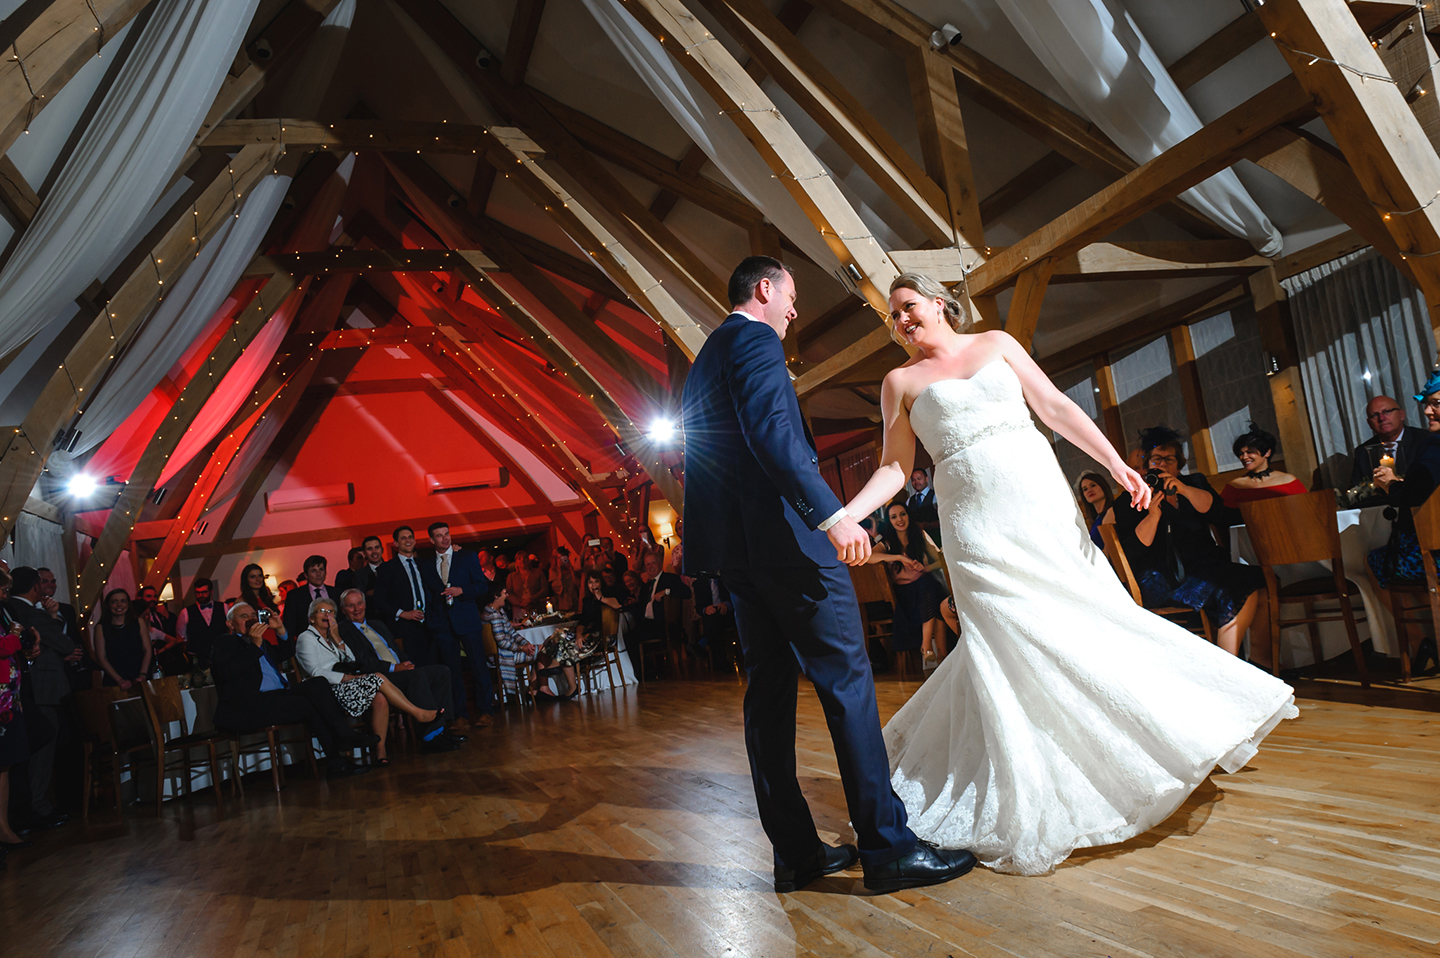 The happy couple enjoy their first dance on the dncefloor as husband and wife